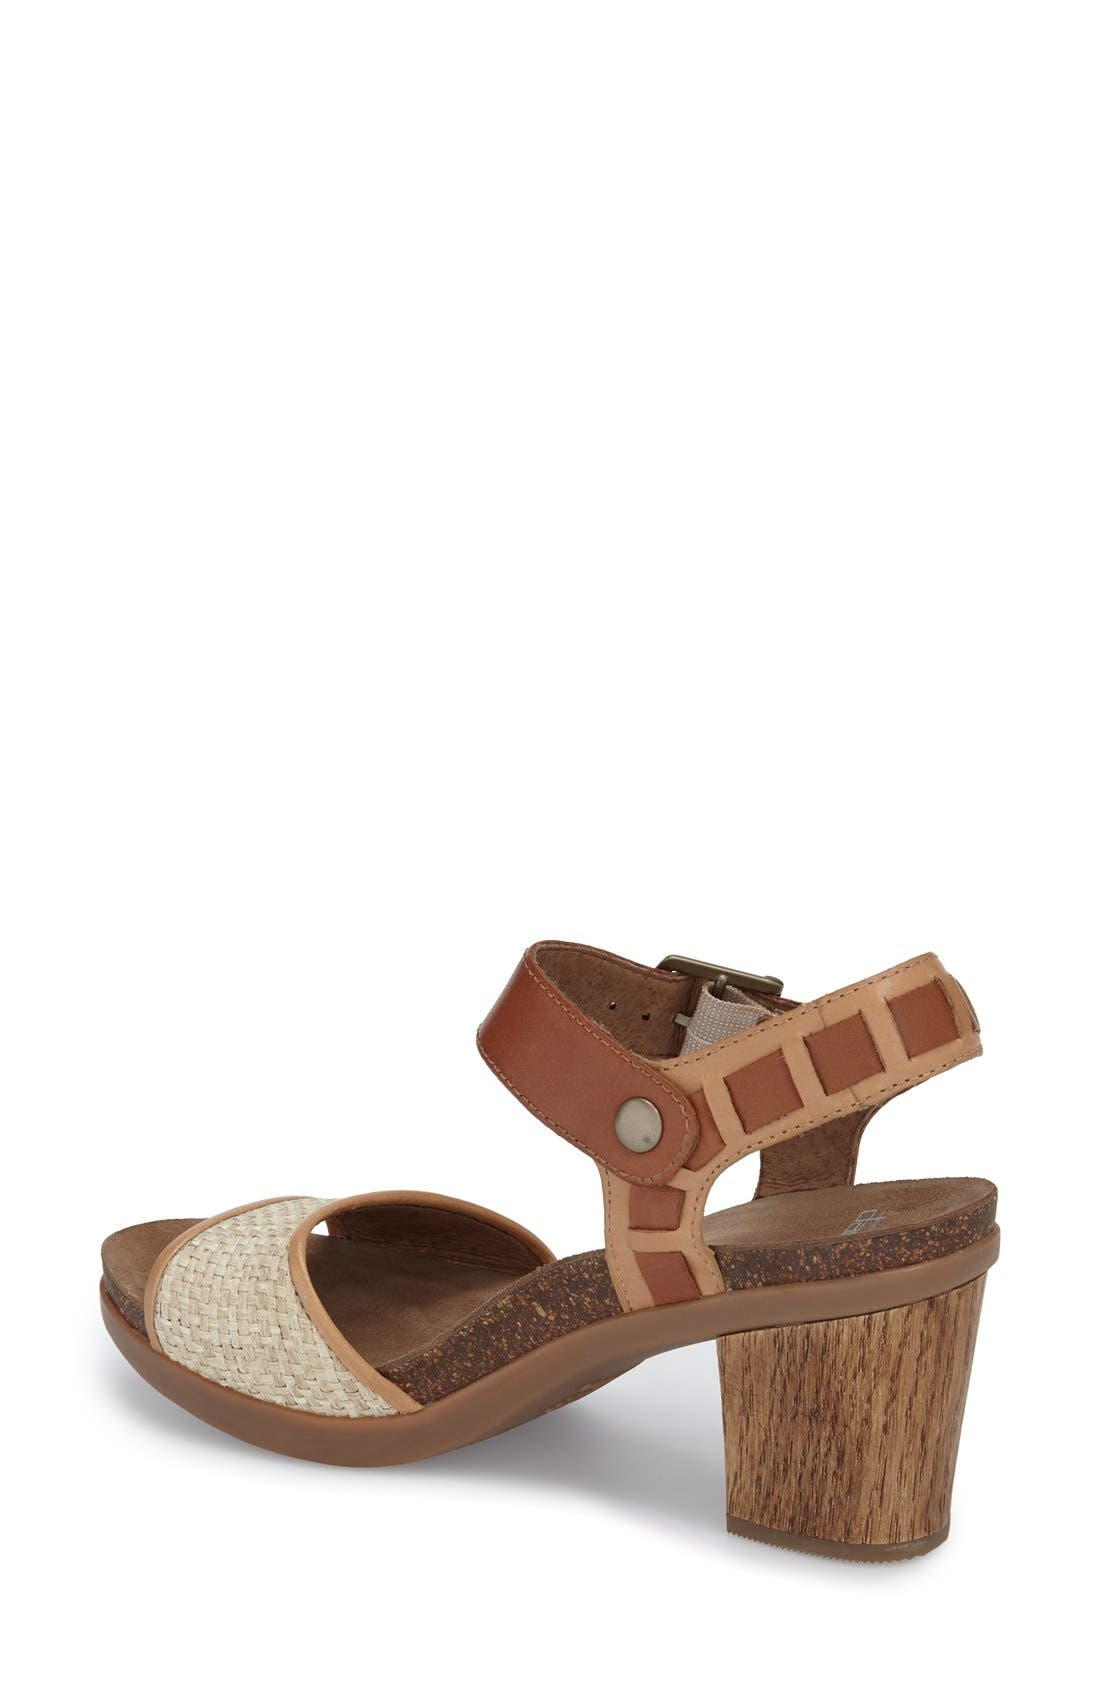 'Debby' Platform Sandal,                             Alternate thumbnail 4, color,